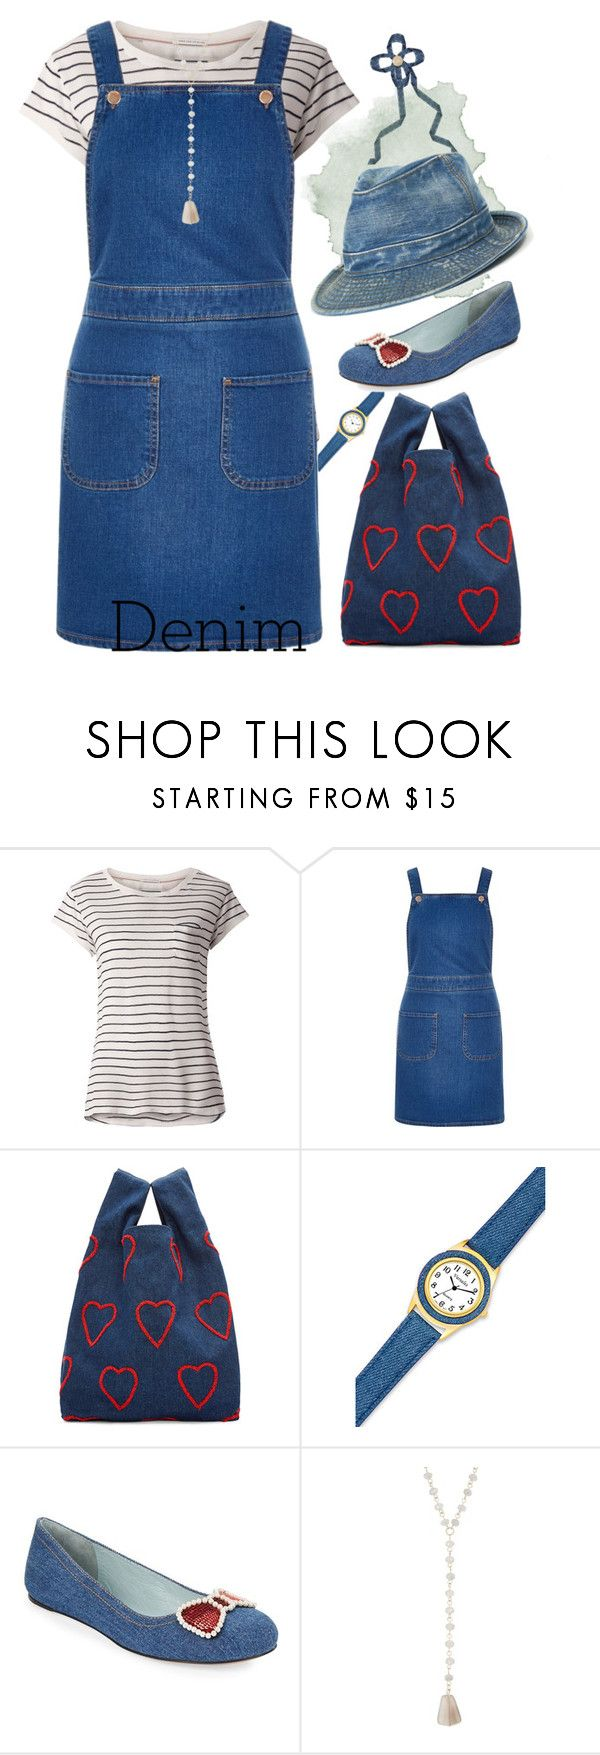 """""""Untitled #6684"""" by ana-angela ❤ liked on Polyvore featuring Tommy Hilfiger, River Island, Ashish, Marc Jacobs, Spring Street and denim"""